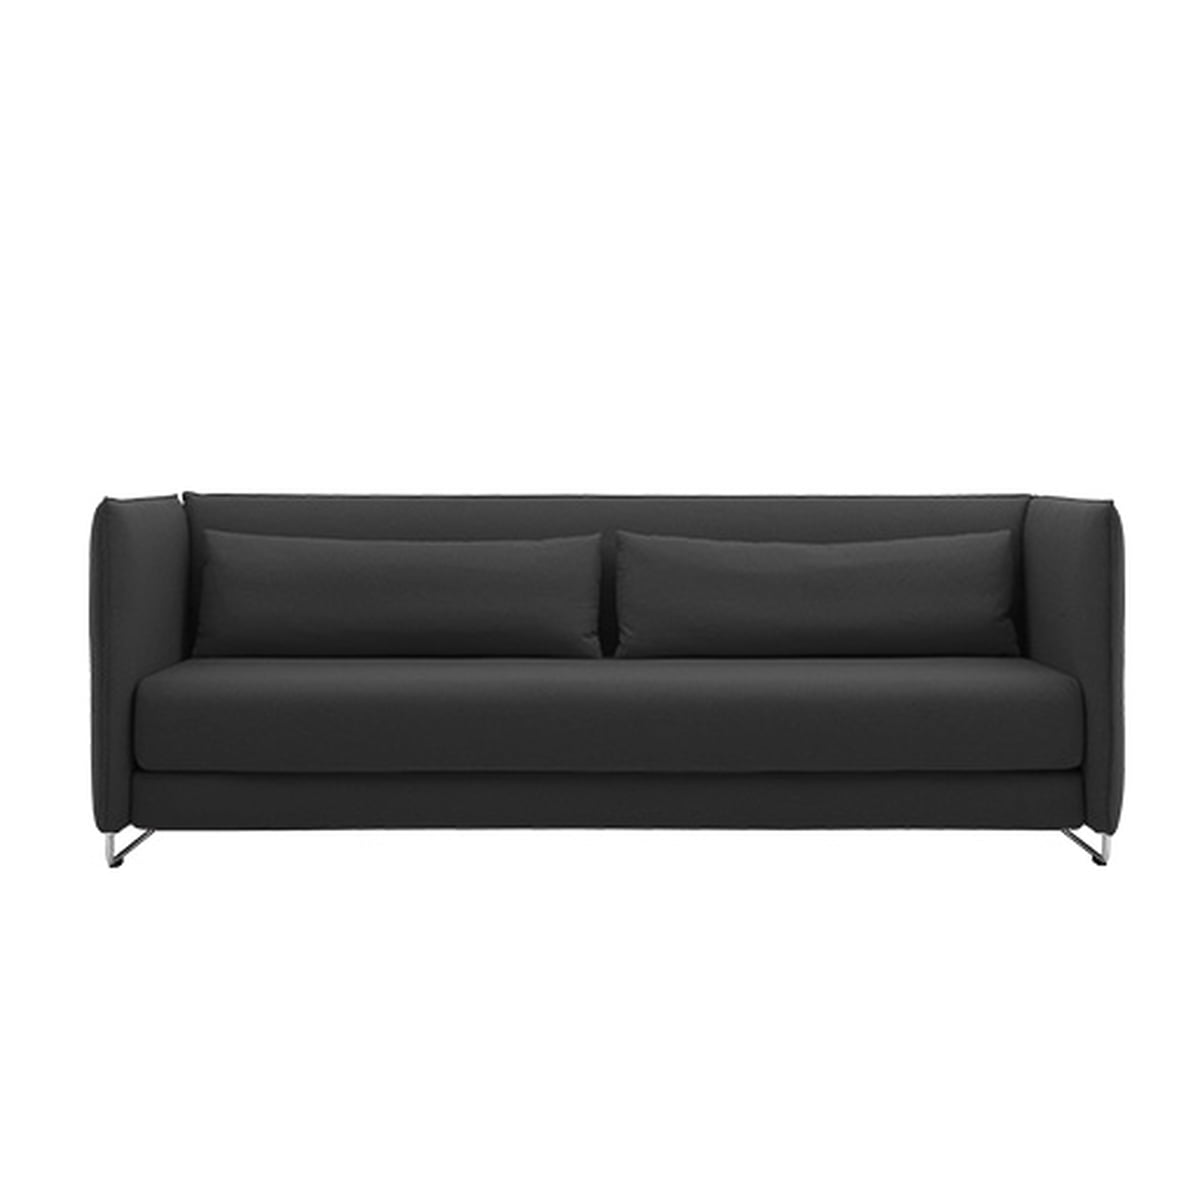 The Metro Sofa Bed By Softline In Our Design Rh Connox Com